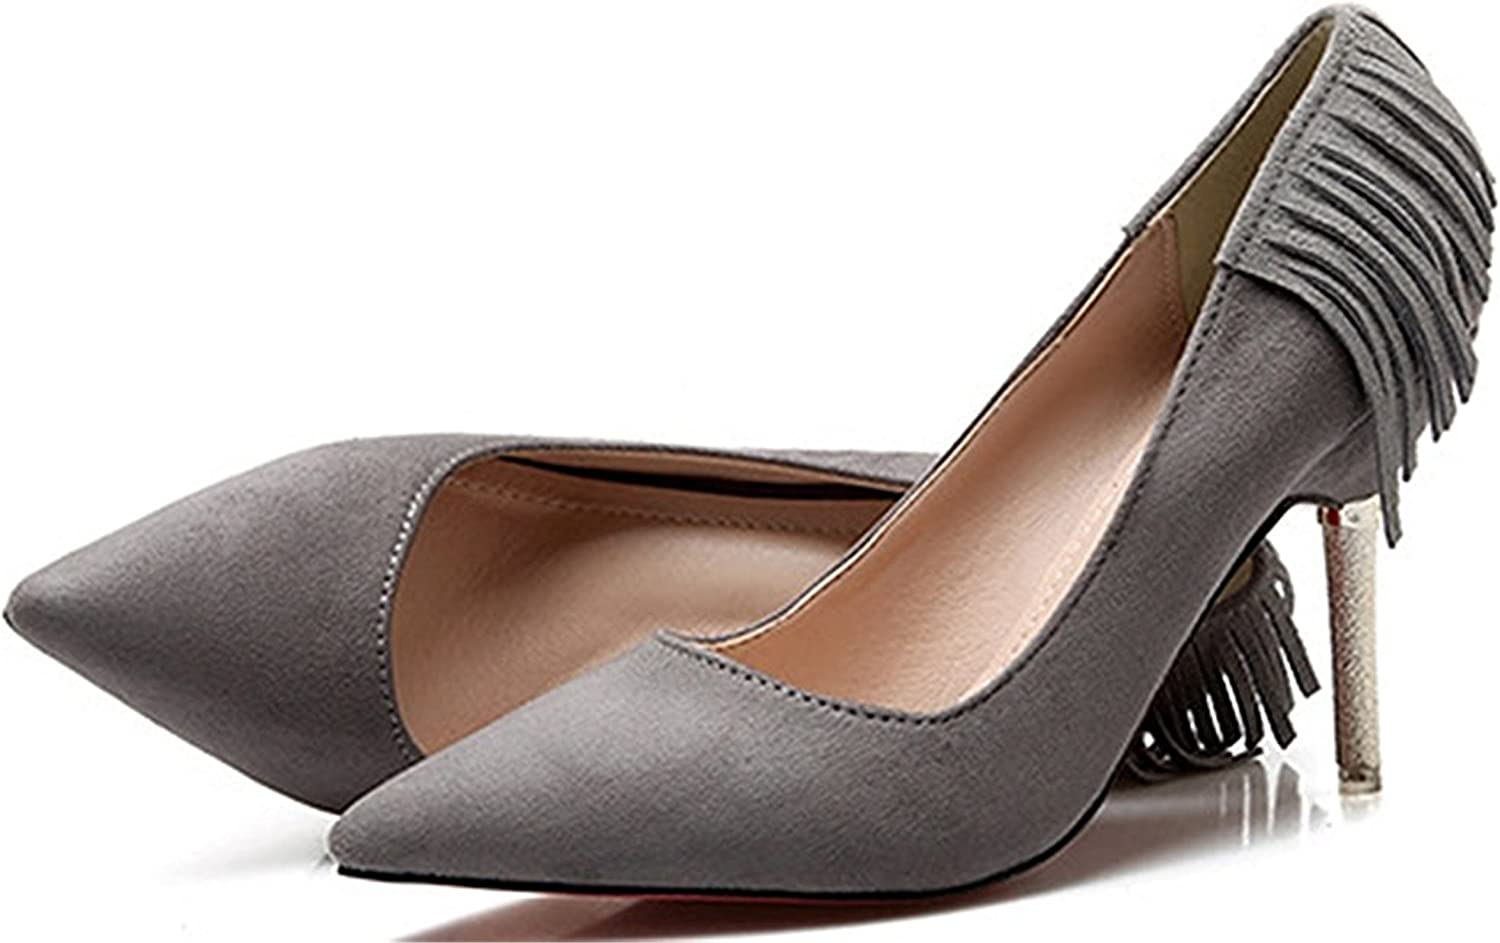 WANabcMAN Comfortable Women's Sexy Tasseled High Heel Stiletto Pointed Toe Low Top Slip On Pumps shoes